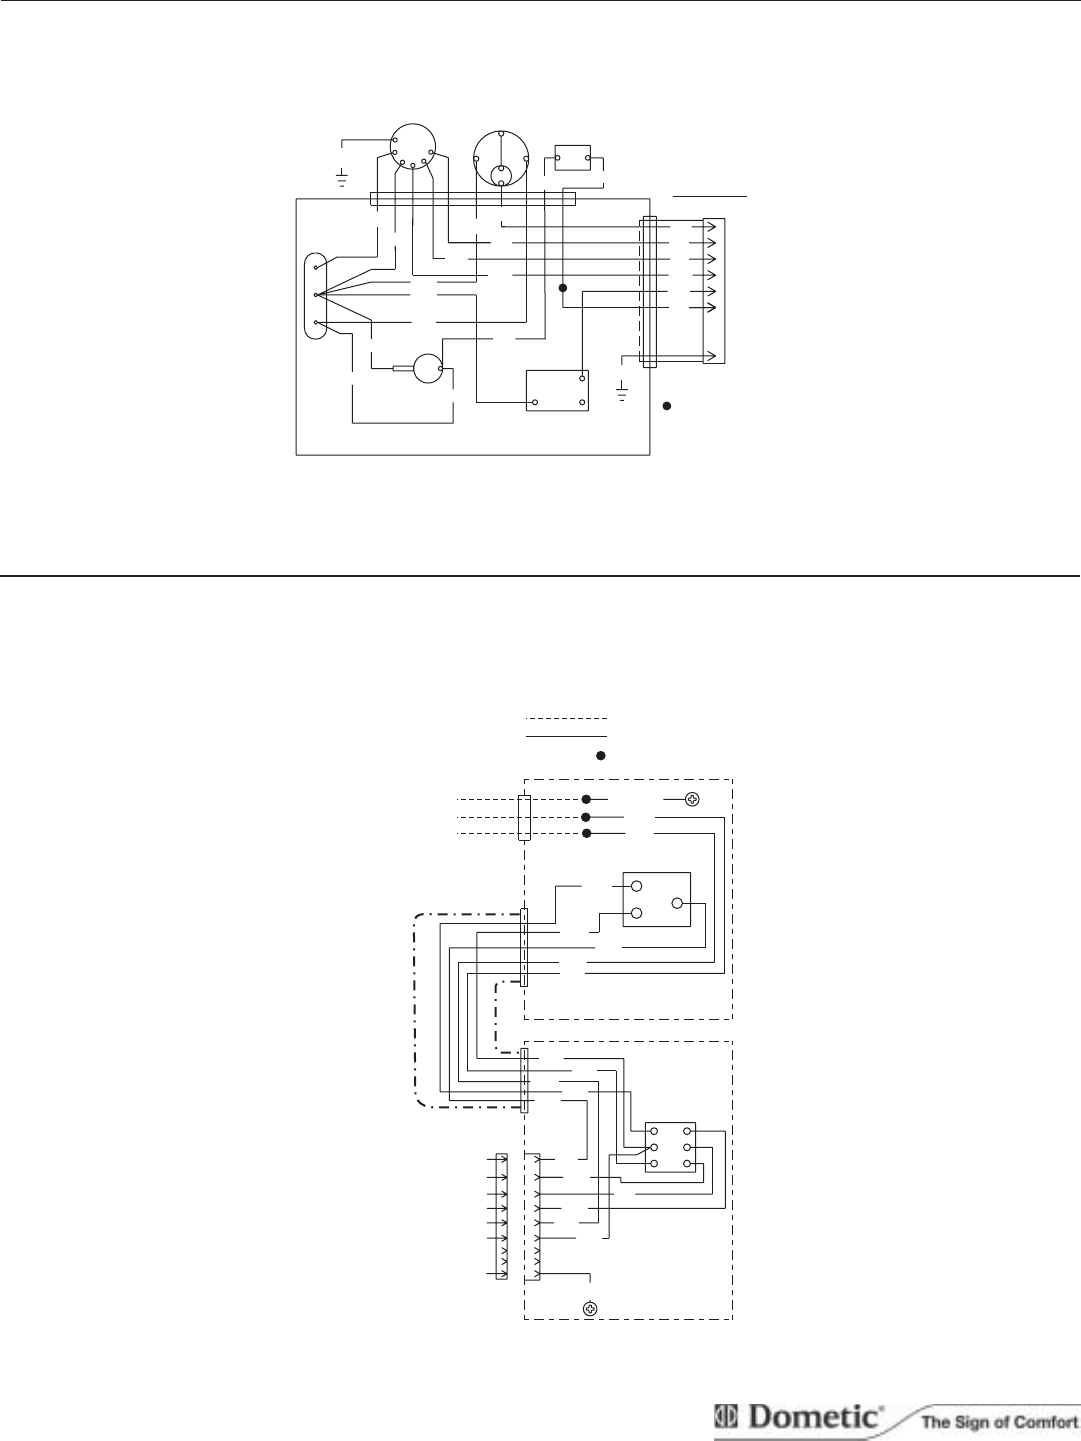 Dometic three wire thermostat wiring diagram get